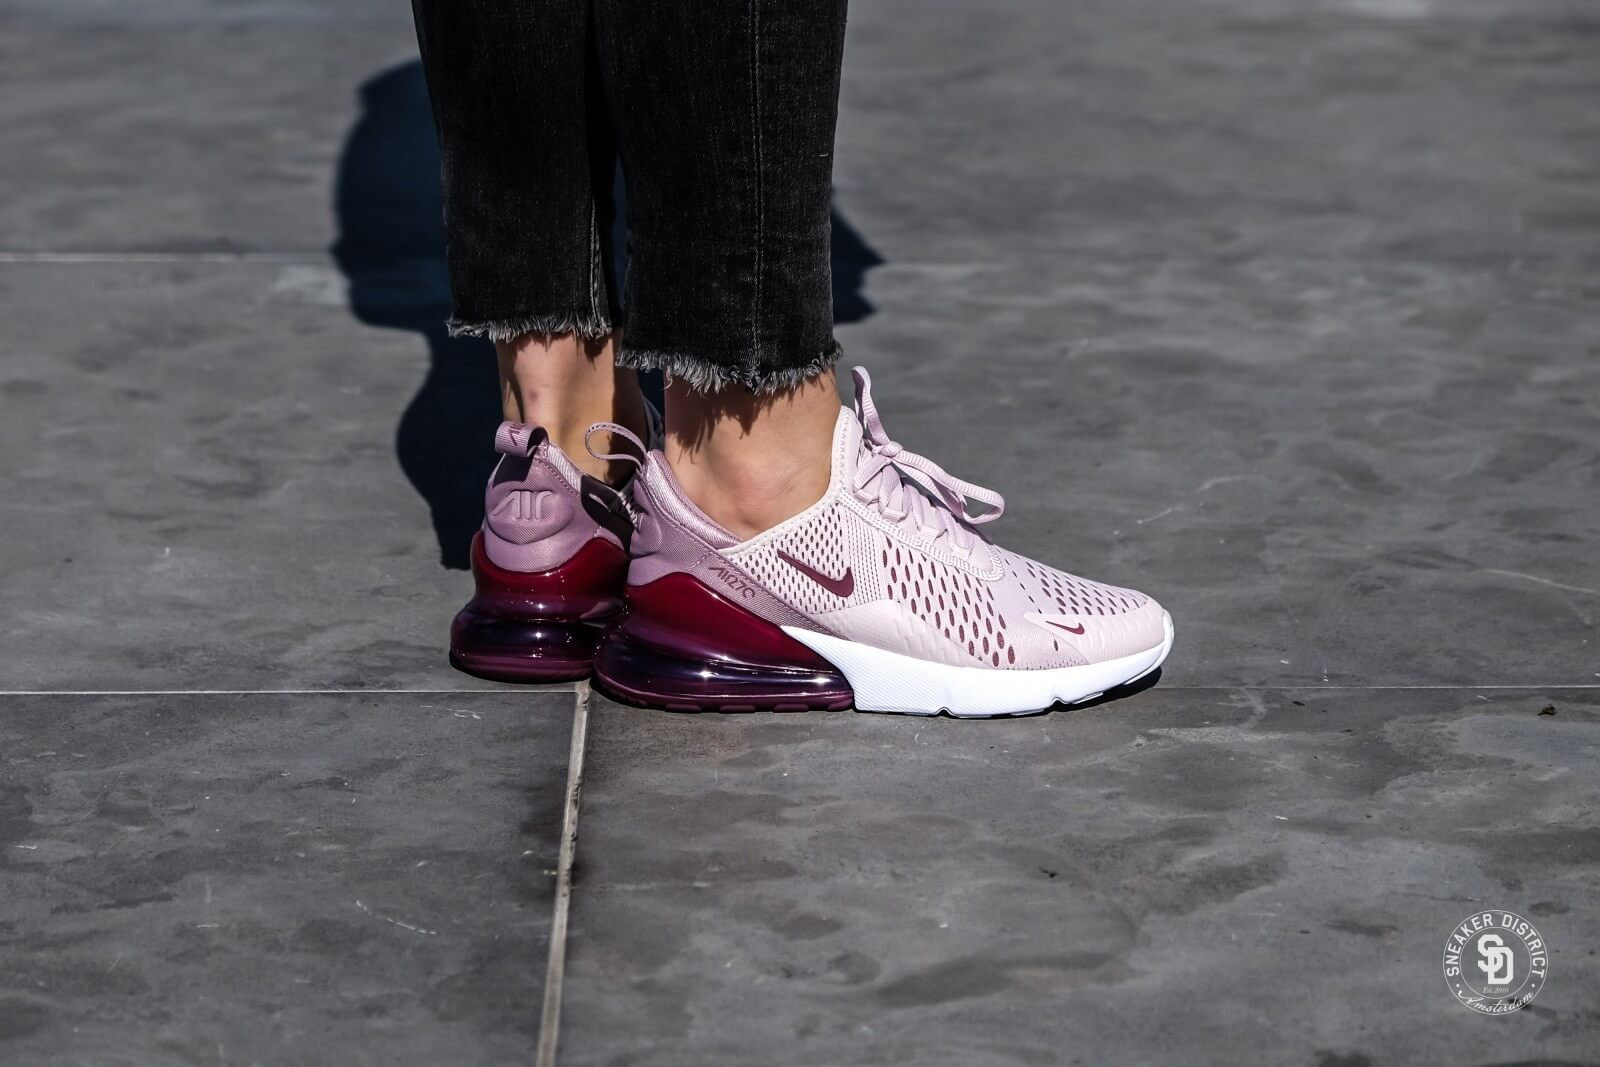 Nike Air Max 270 Vintage Wine AH6789 601